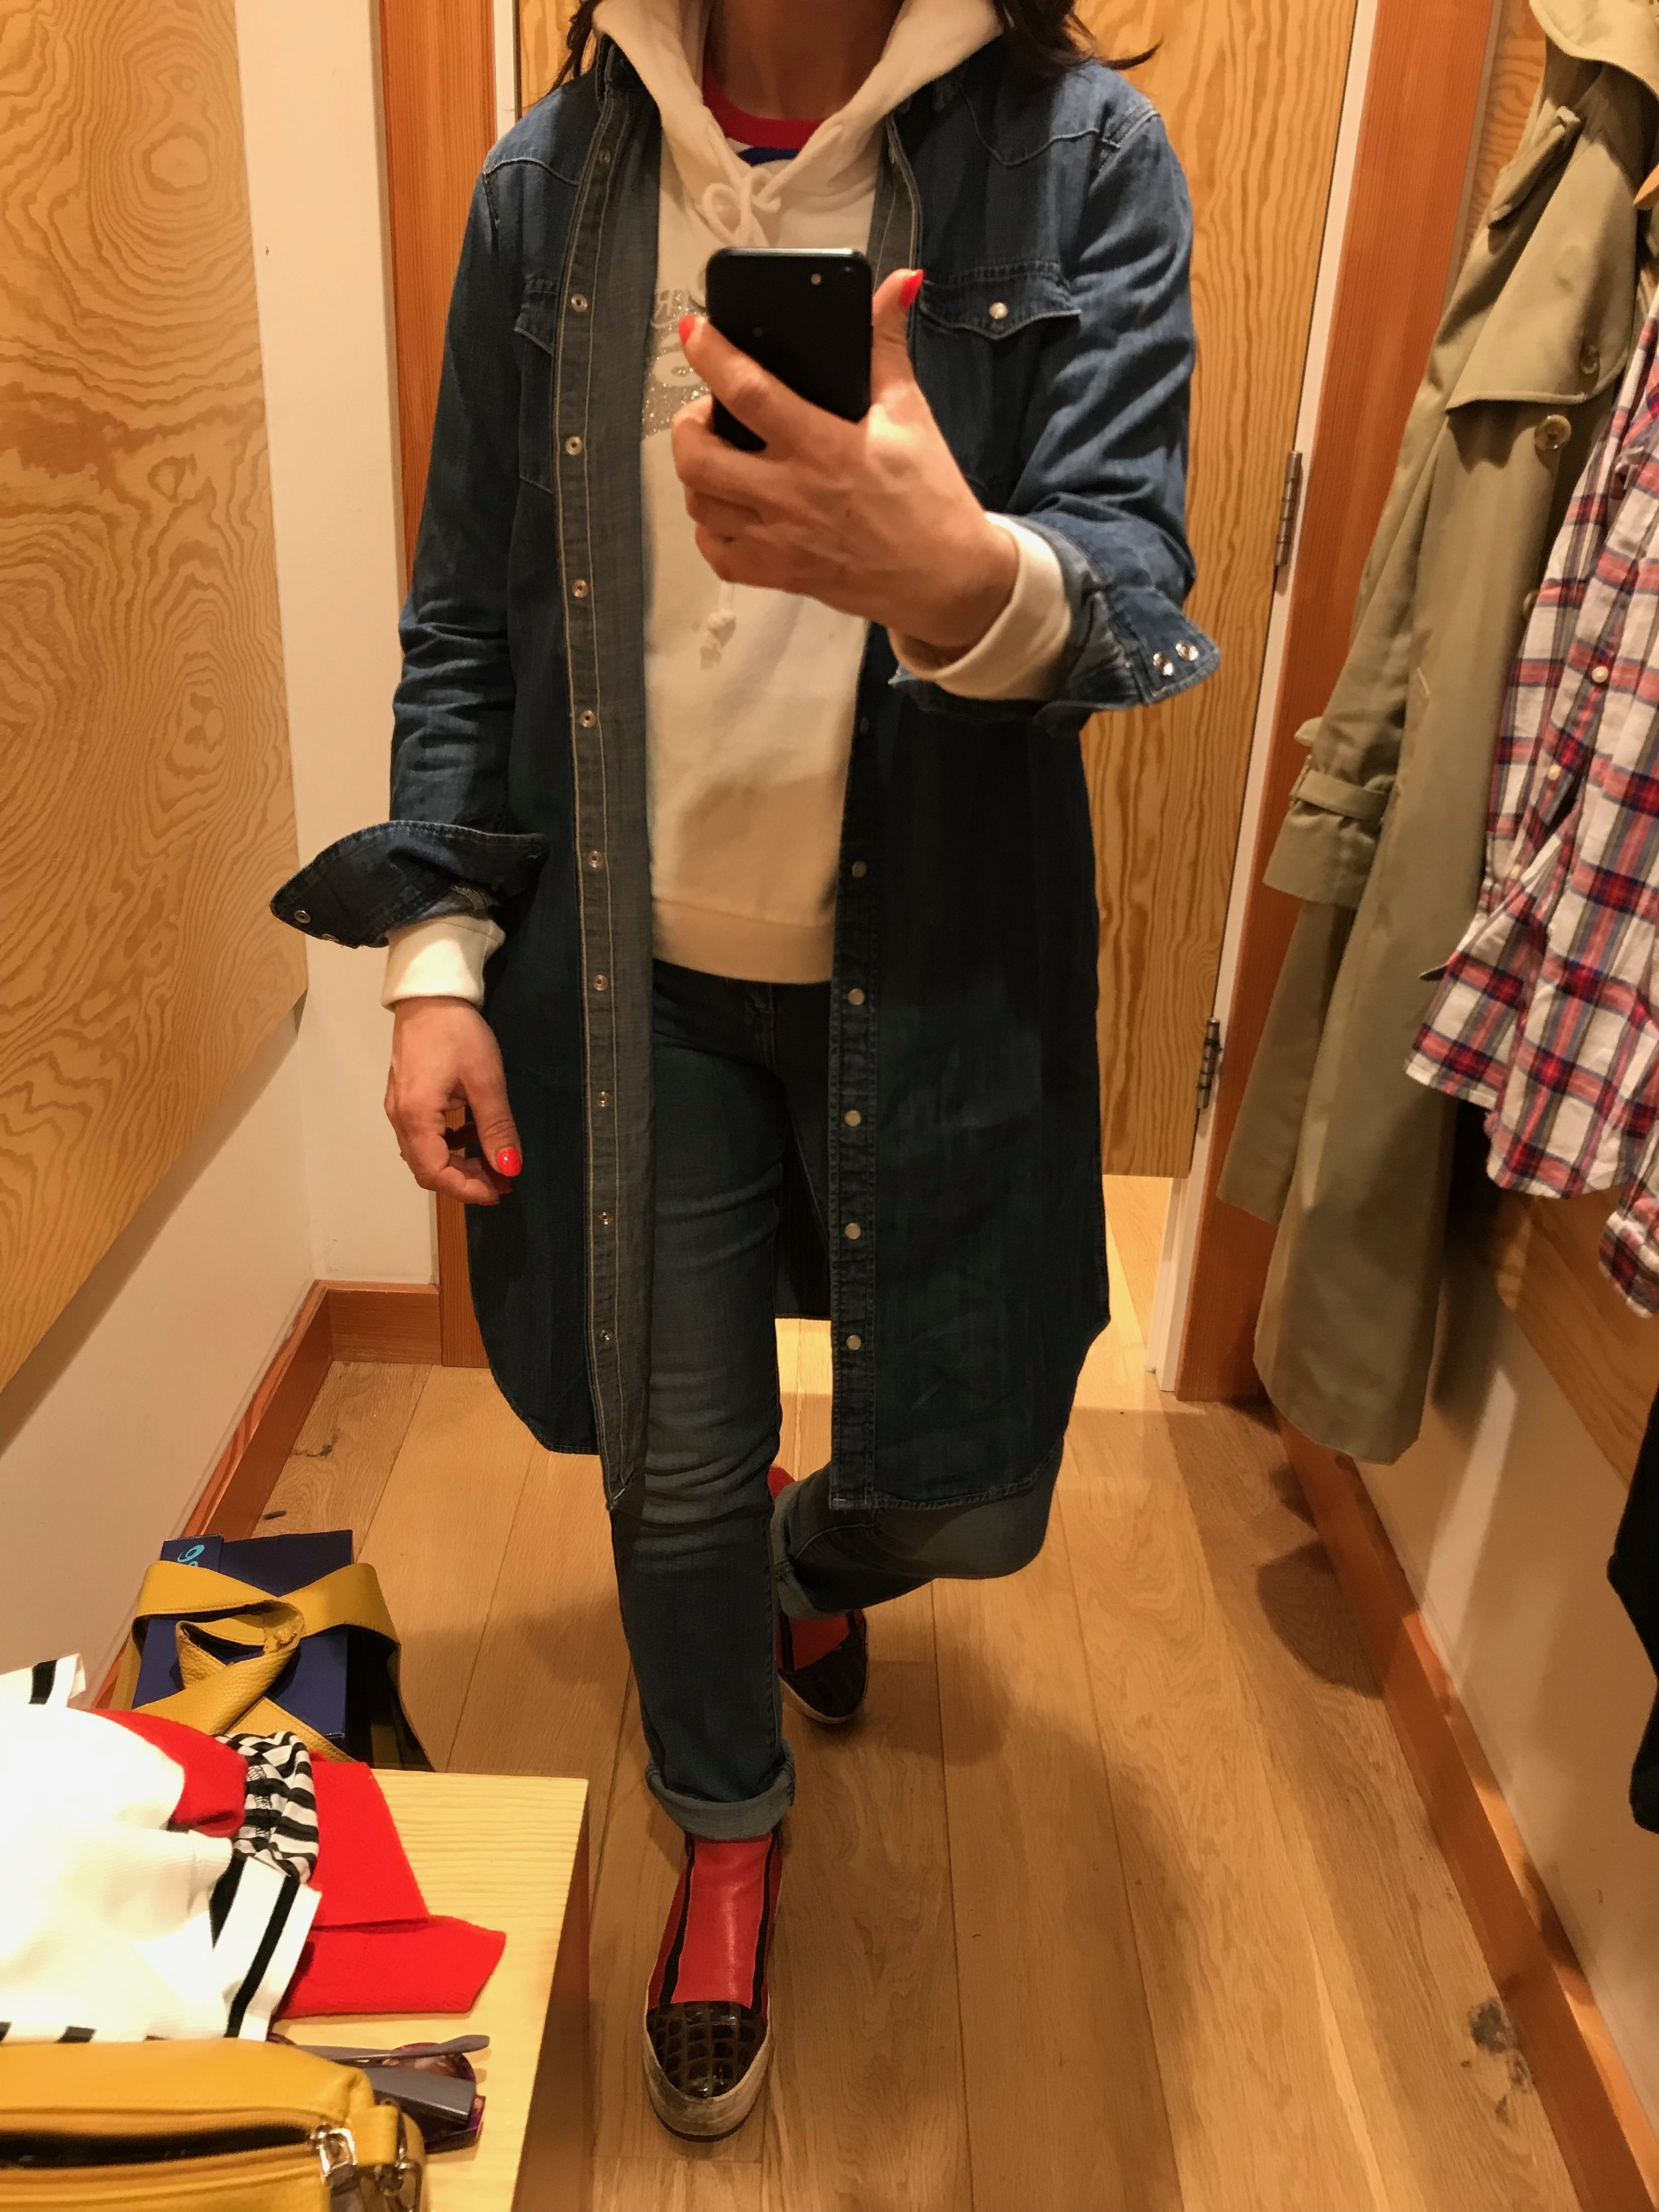 Levis 724 High Rise / Denim Shirt Dress / White Hoodie